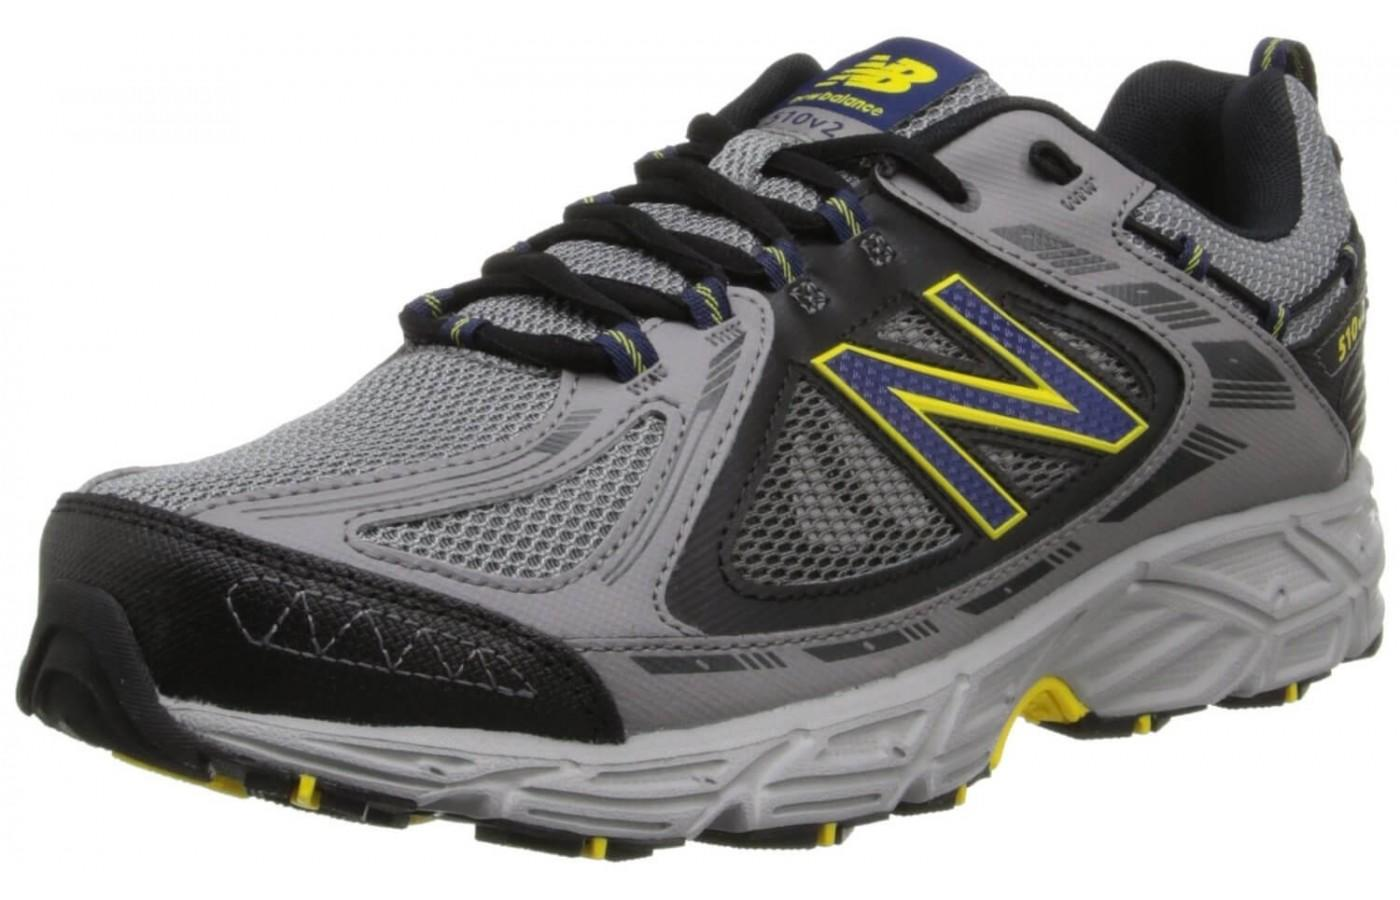 New Balance's NT510 comes in sizes to accommodate individuals with wider feet.